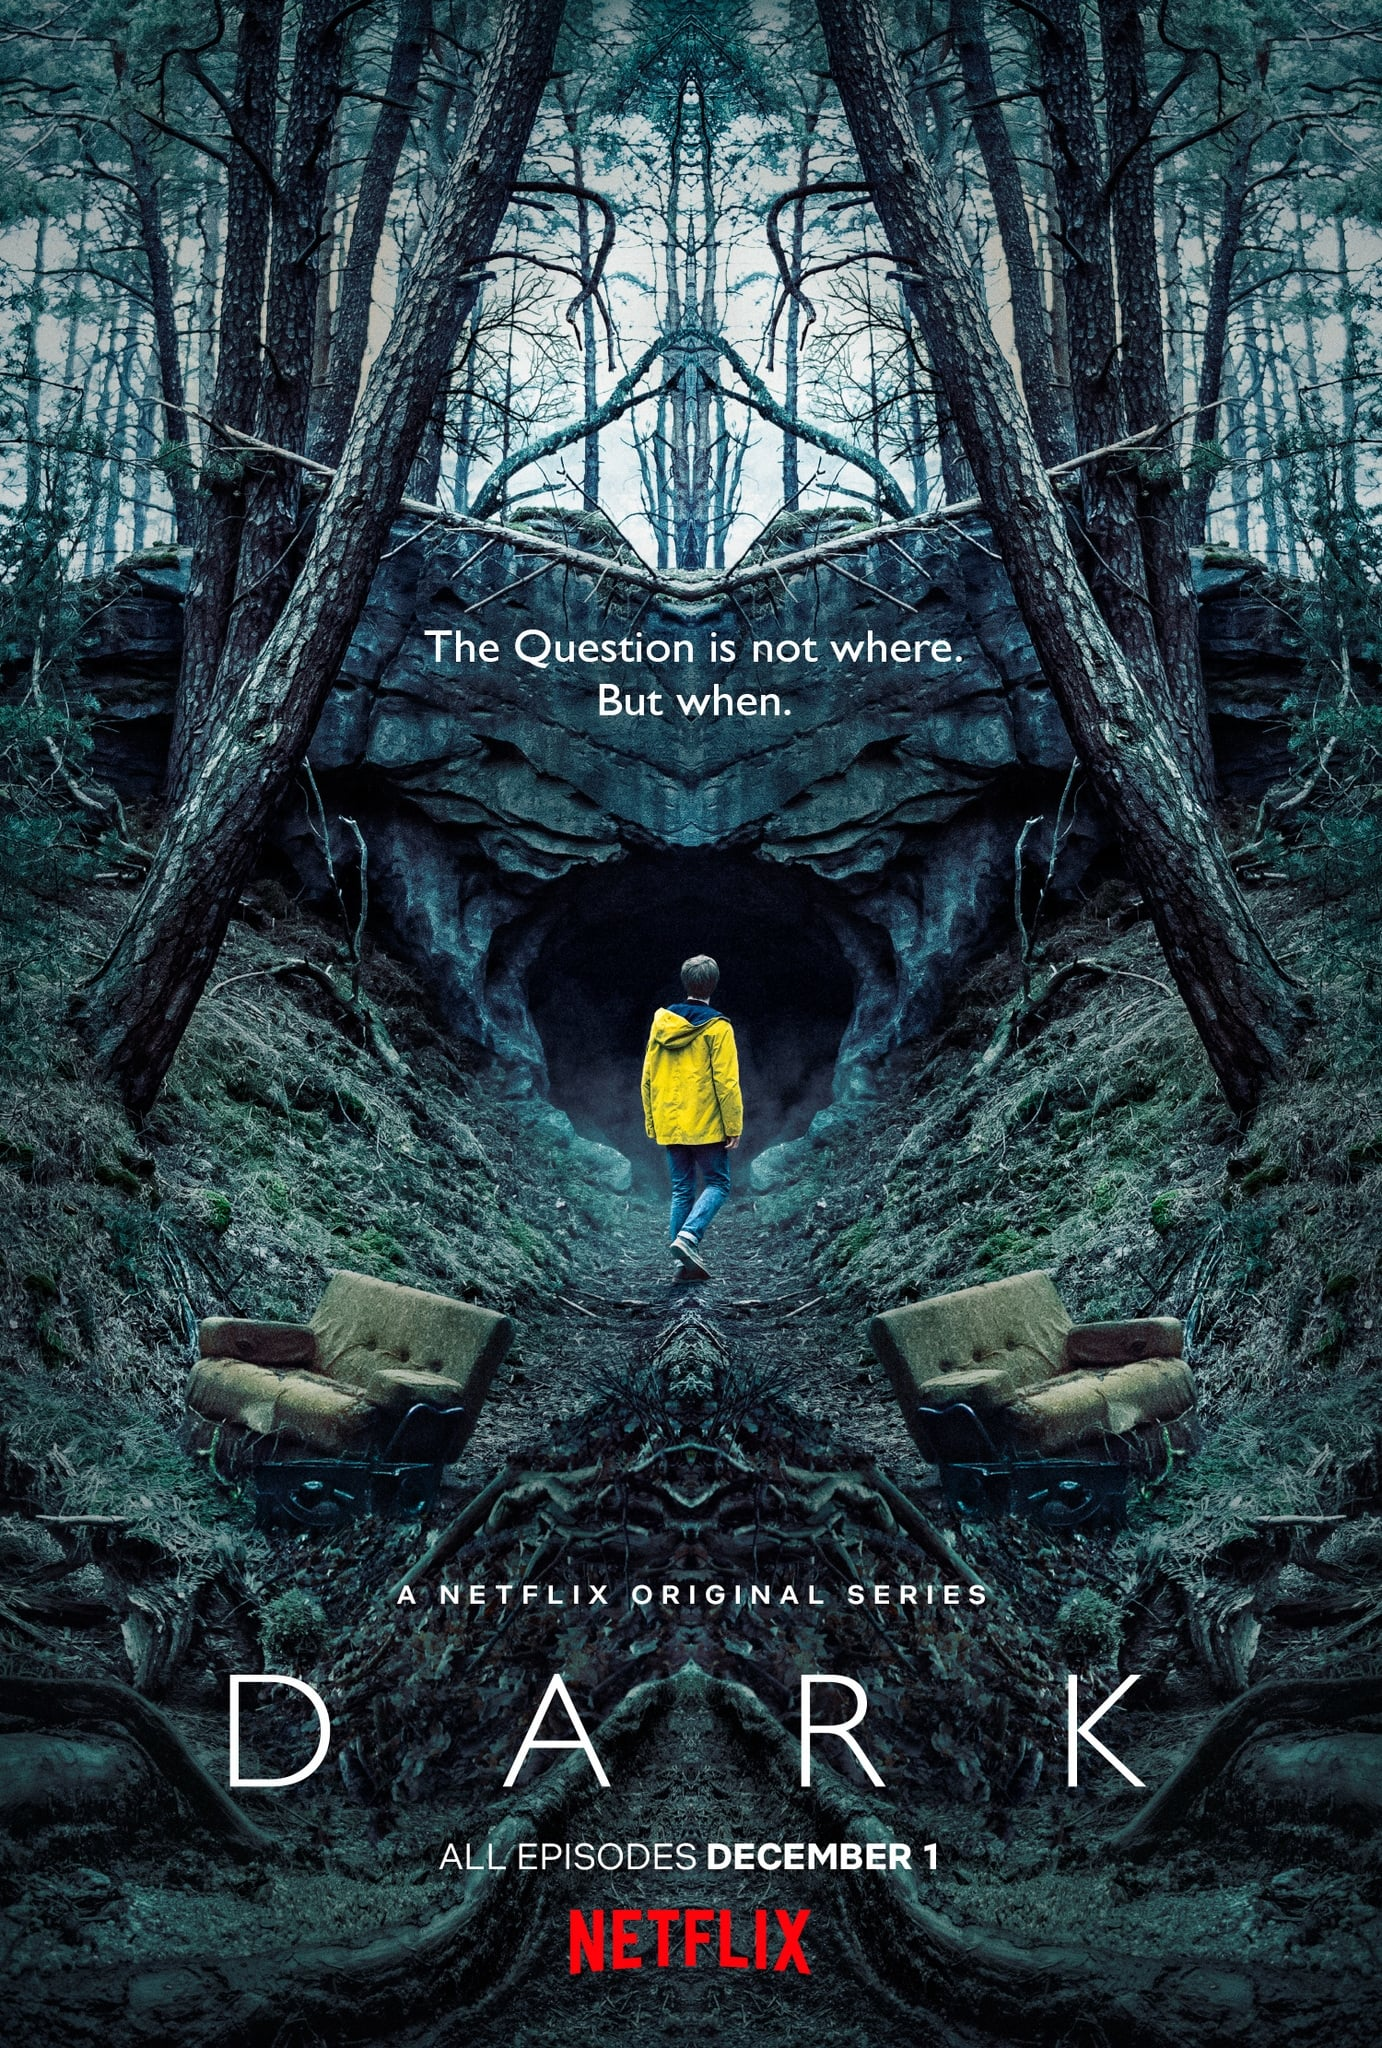 Dark S01 (2017) [German+English] | x265 HEVC 10Bit WEB-Rip | 1080p | 720p | 480p | Download | Watch